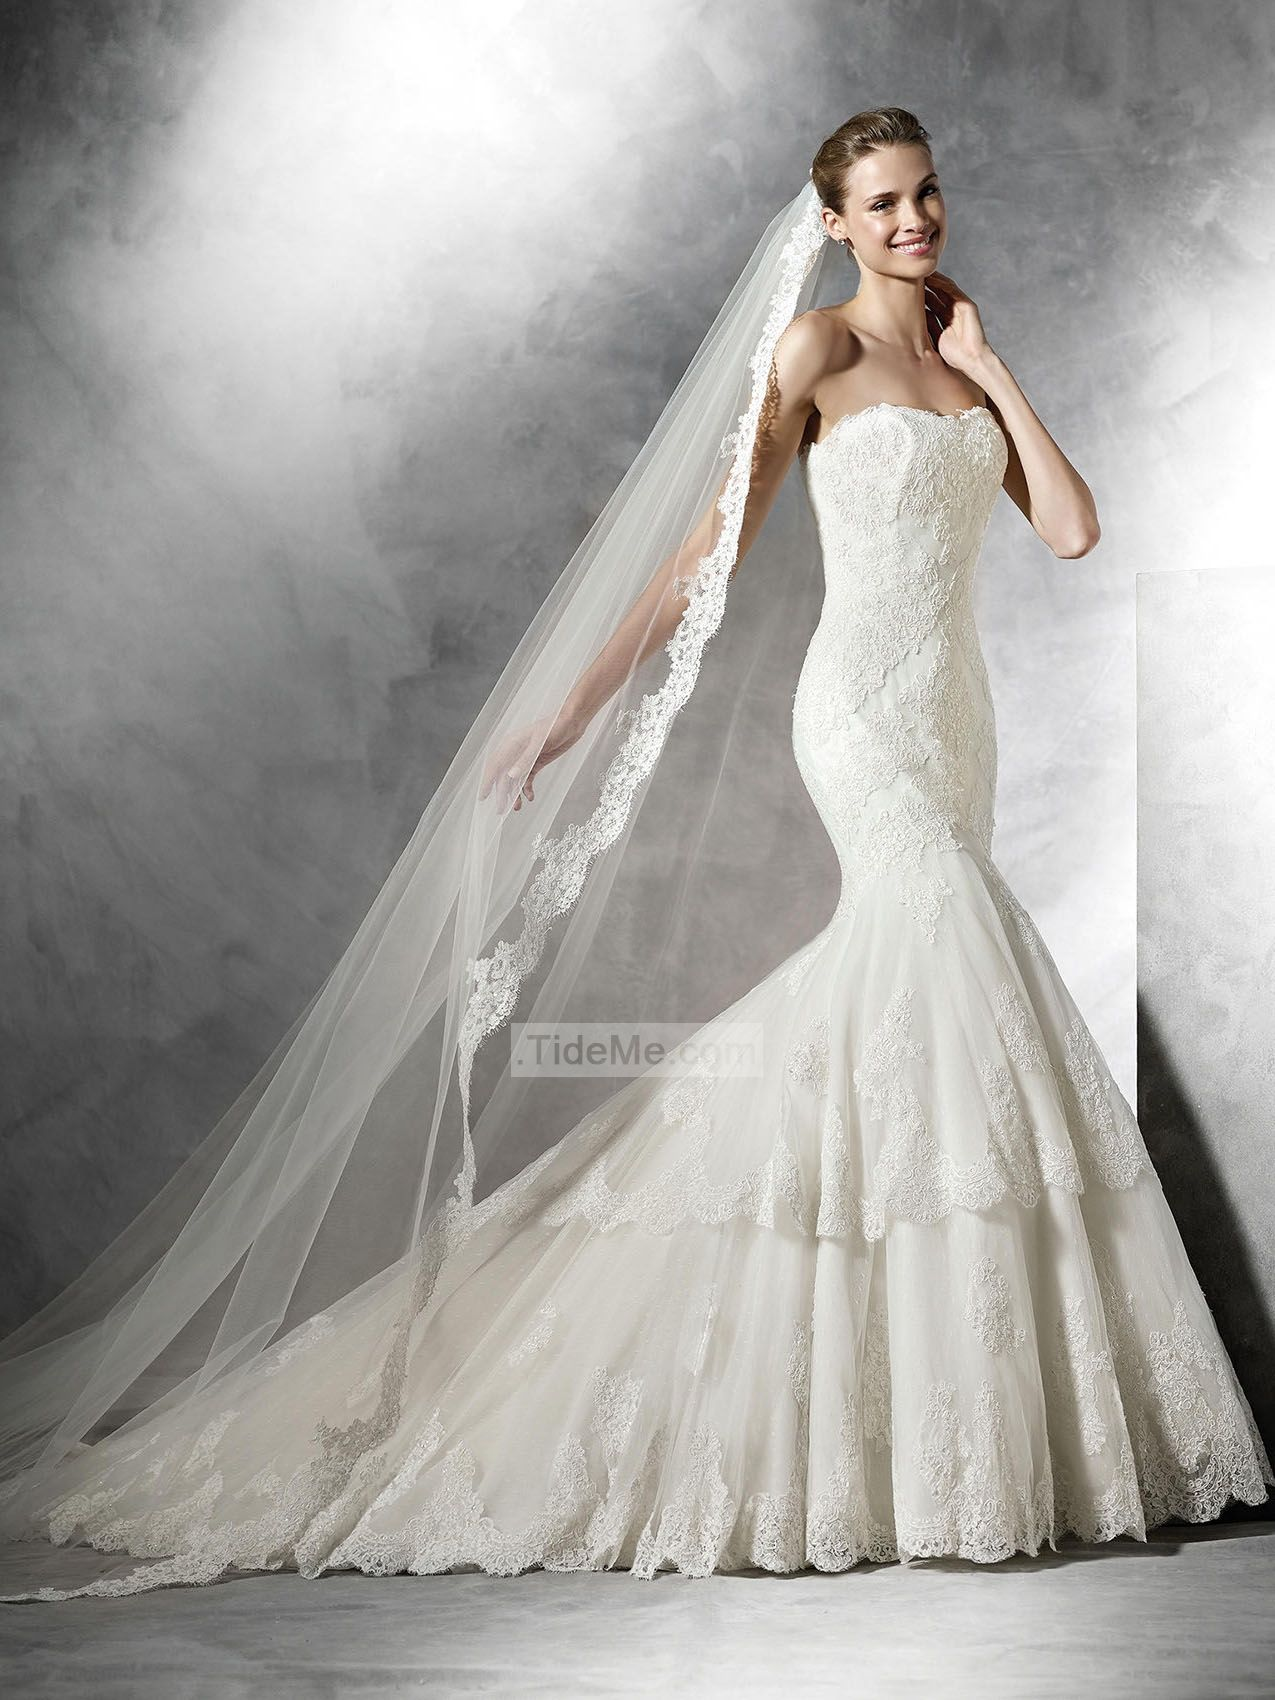 Fishtail wedding dress  Strapless Mermaid With Layered Lace Wedding Dresses PNND  Hot